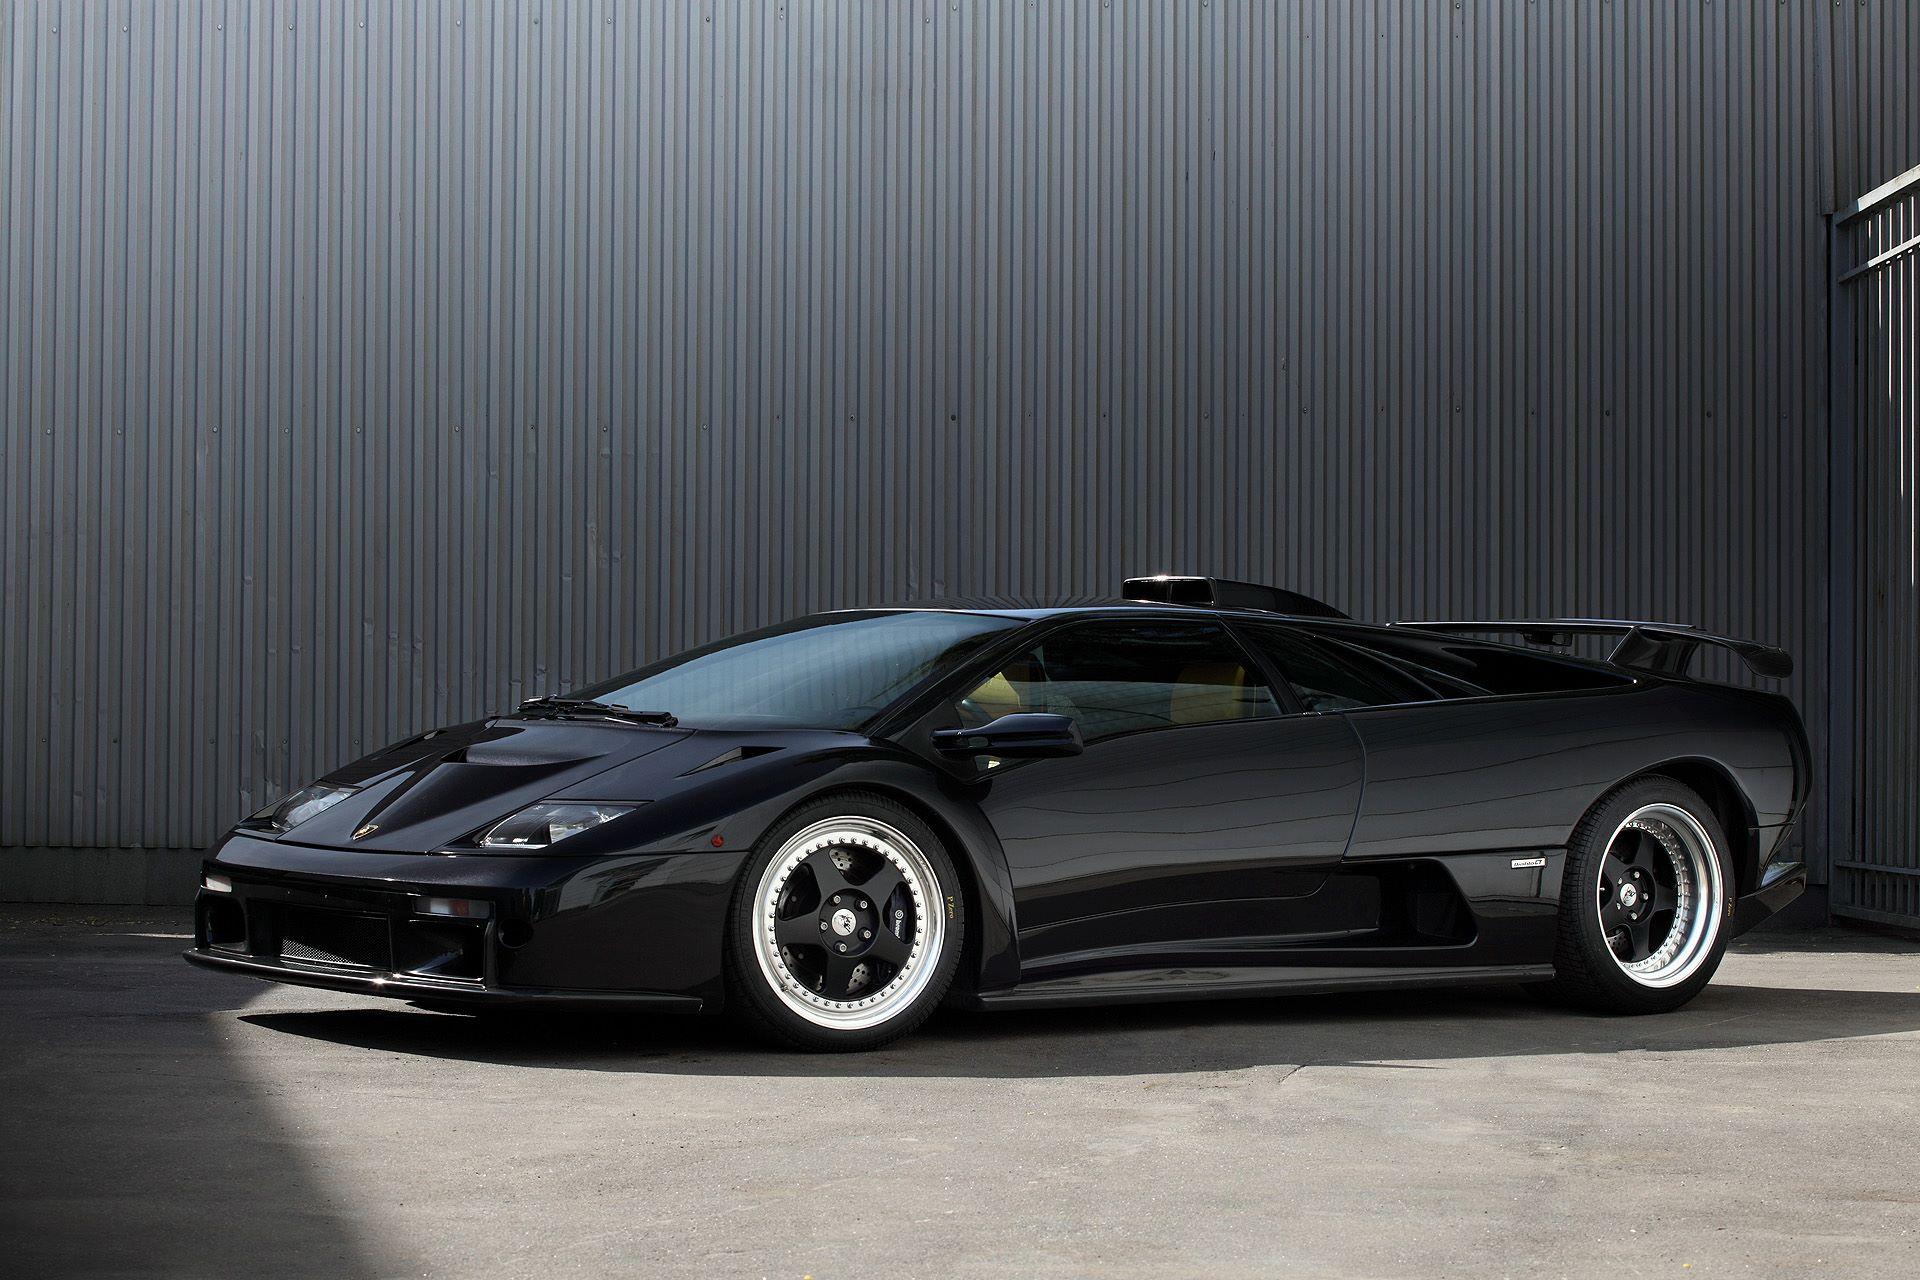 Rare Lamborghini Diablo Gt Gets Carbon Fiber Accents From